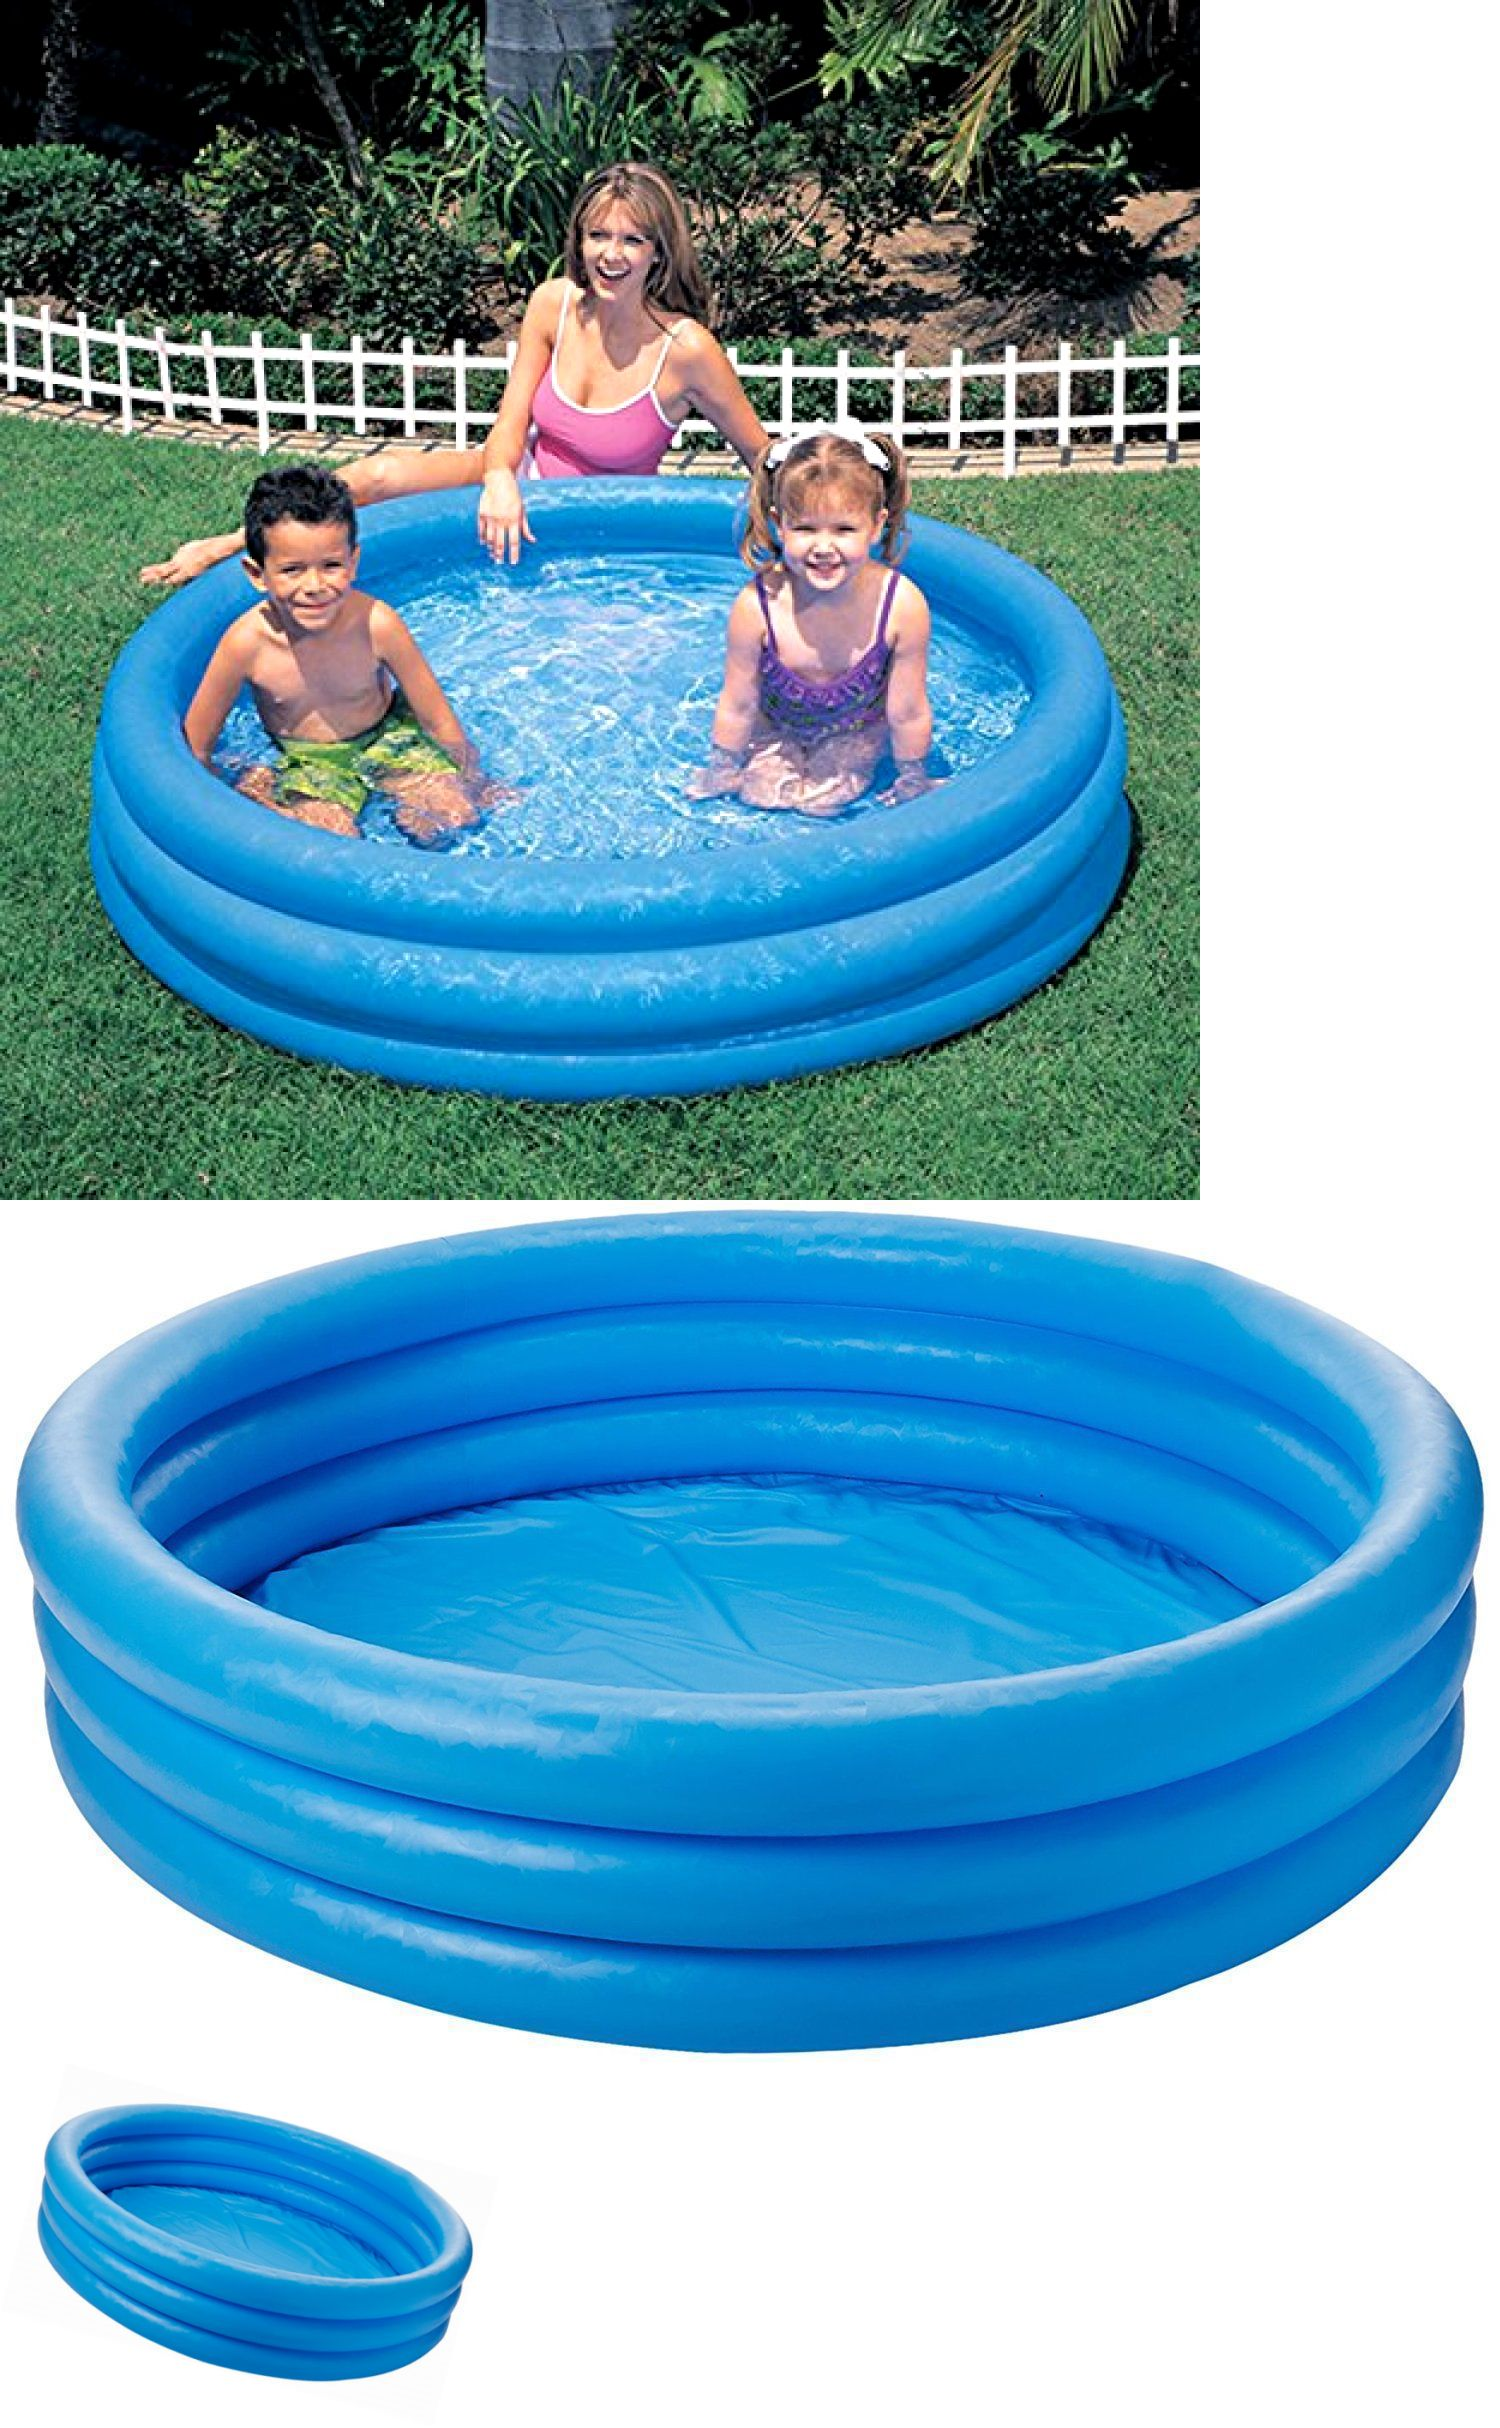 Inflatable and Kid Pools 116407: Intex Inflatable Pool 45 X ...